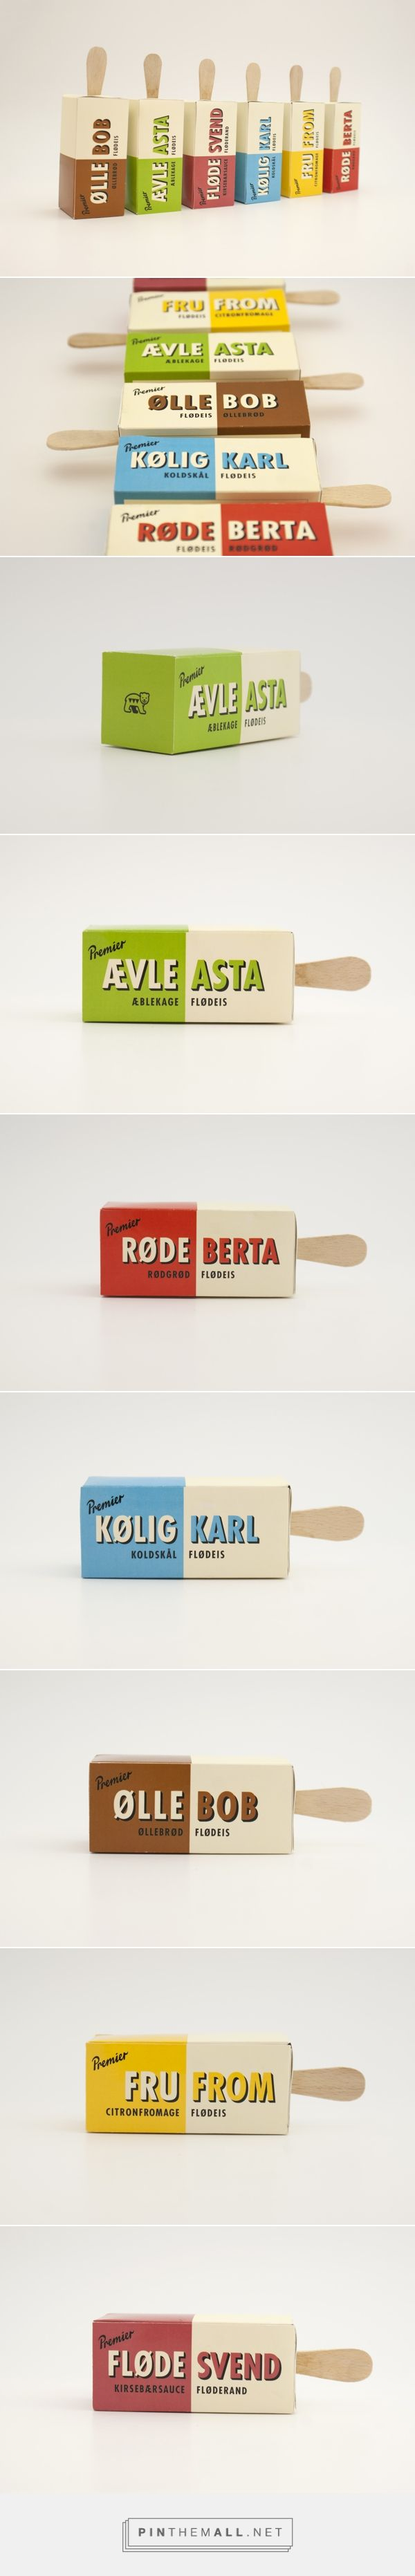 Premier Ice Cream by Lene Arensdorff, Mie Williams and Josefine P. Pin curated by #SFields99 #packaging #design